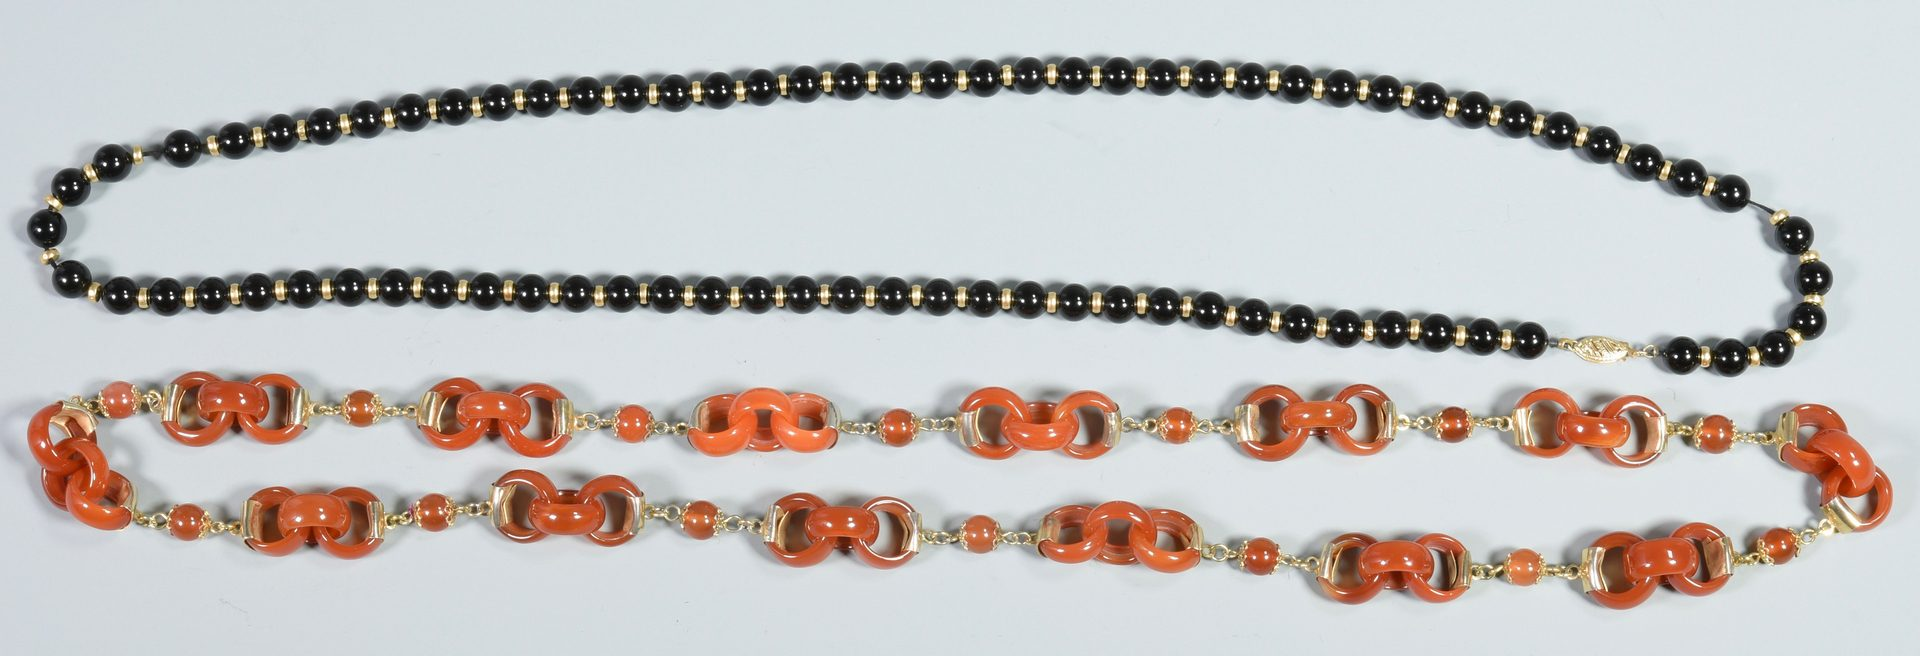 Lot 39: Chinese Carved and/or Beaded Necklaces